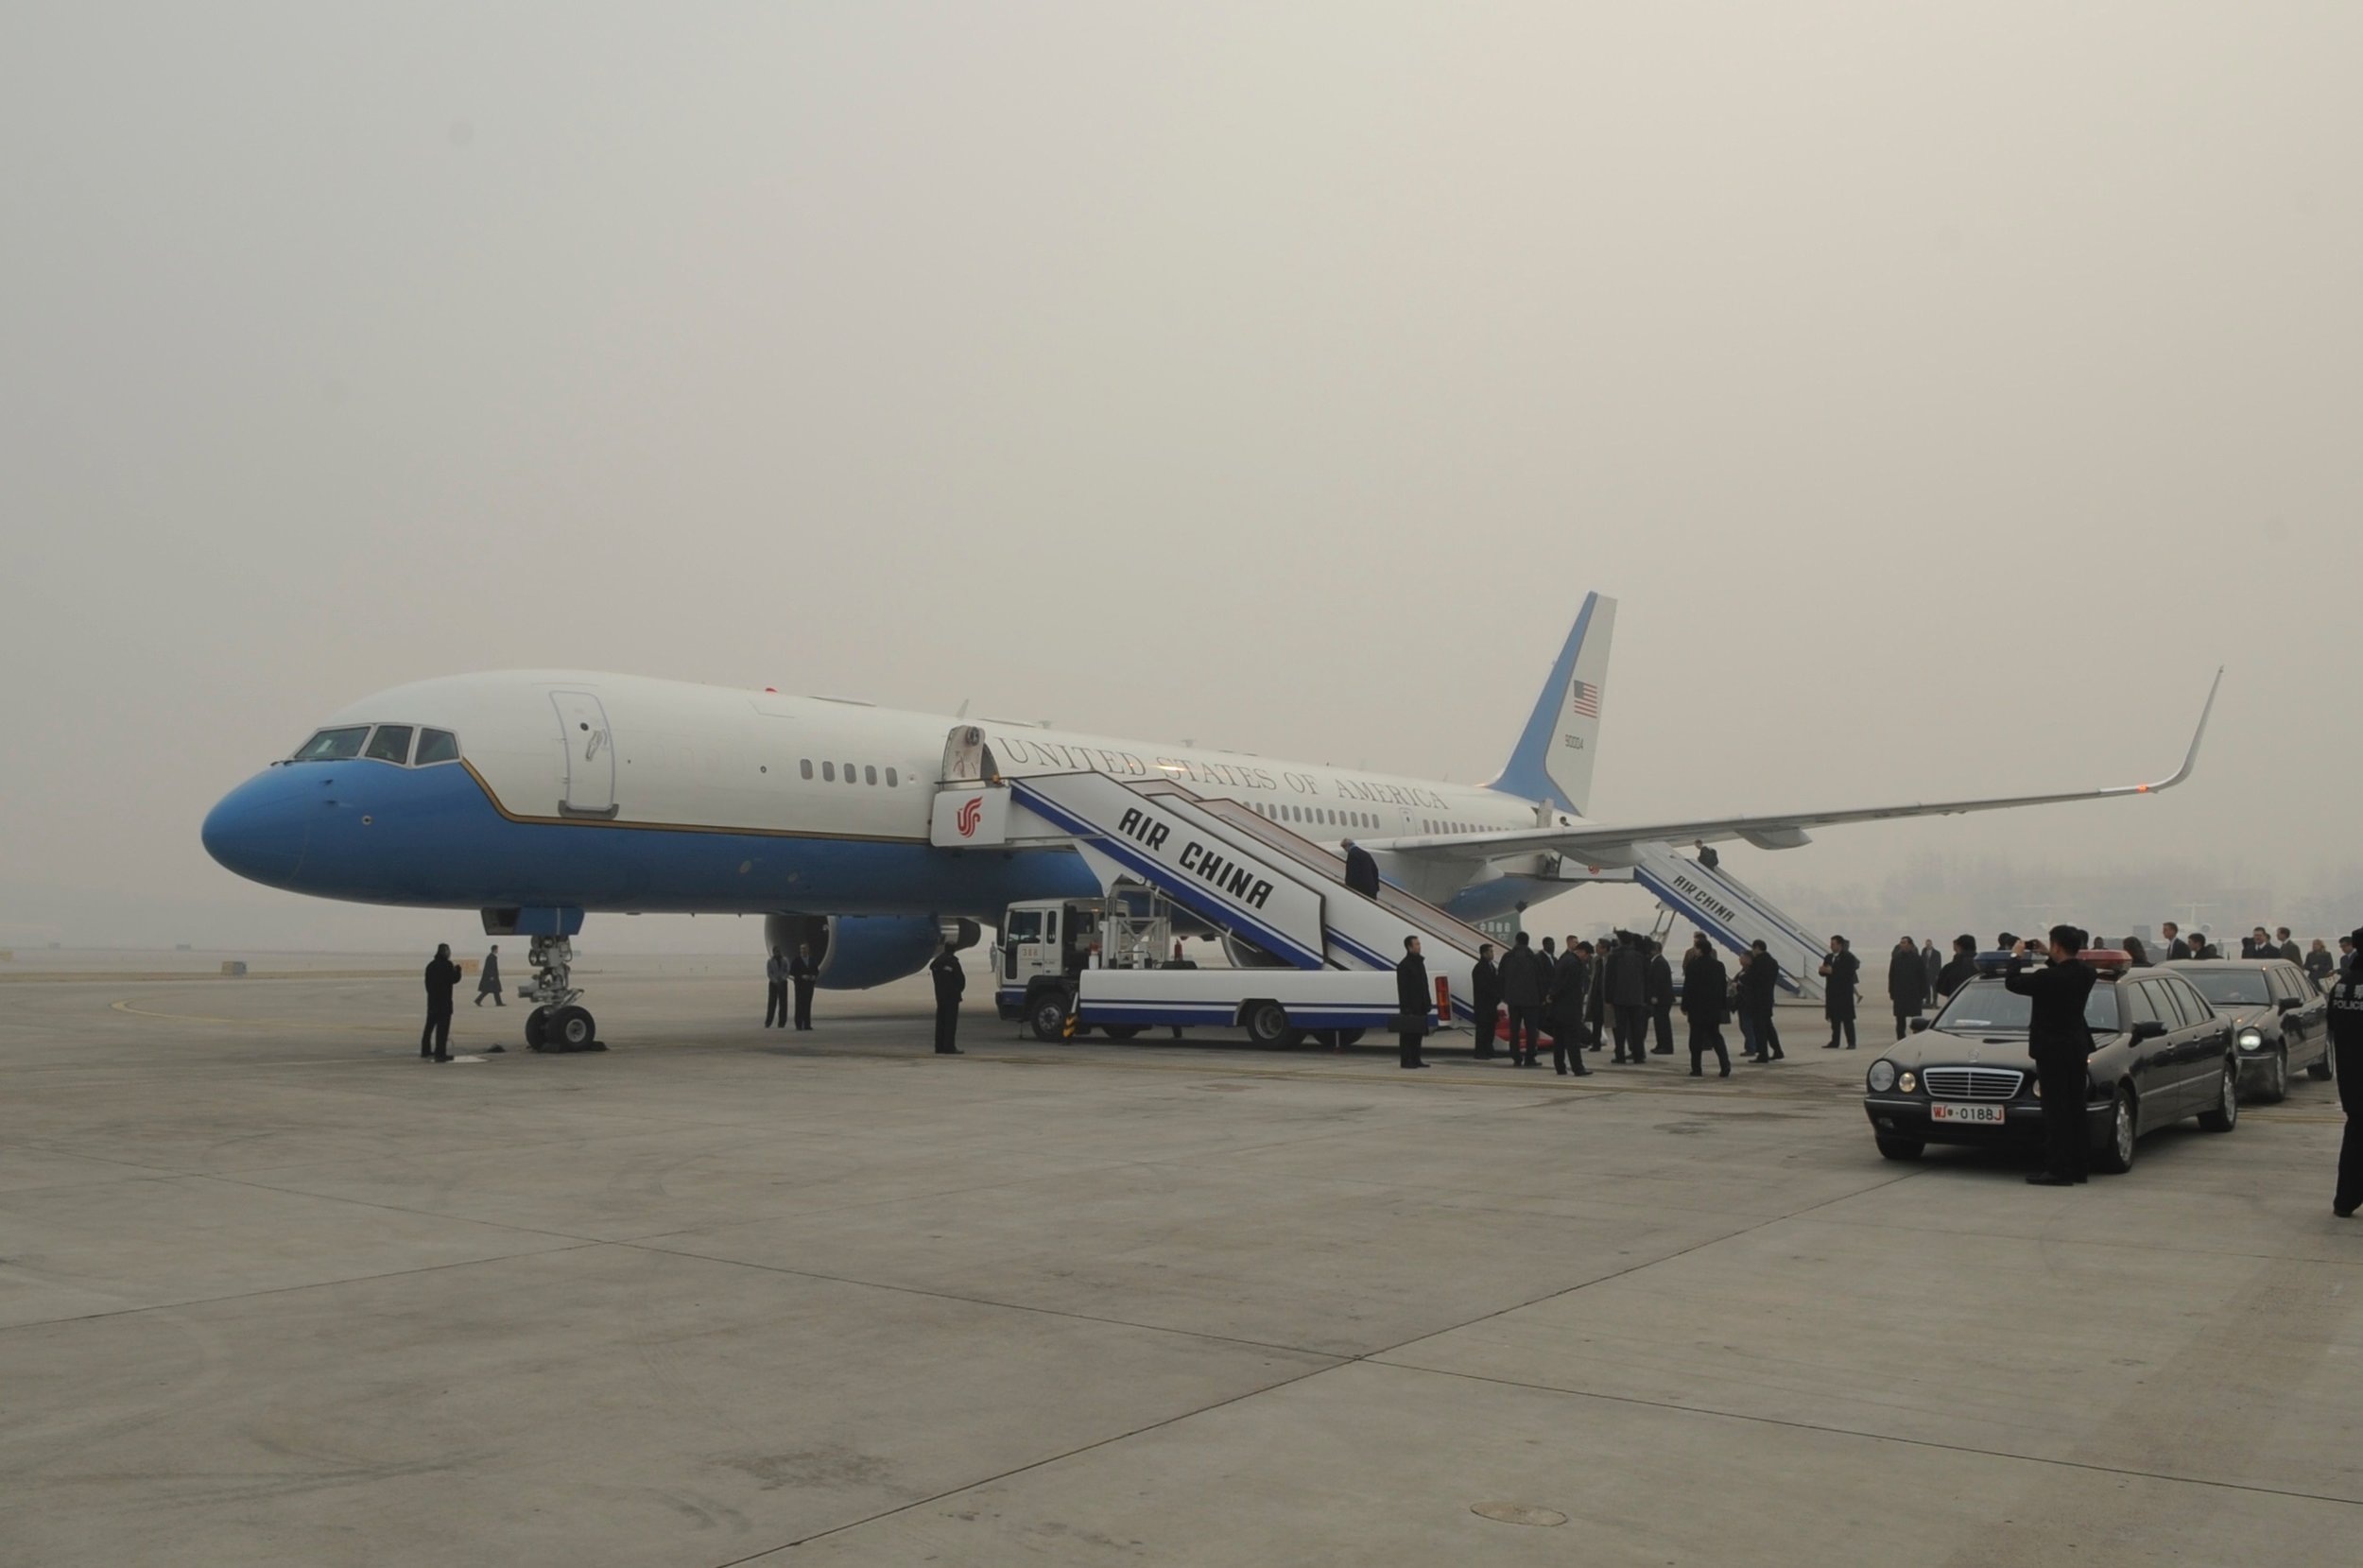 Our plane shrouded in smog in Beijing at high noon during a day that was crystal clear several thousand feet above the airport.